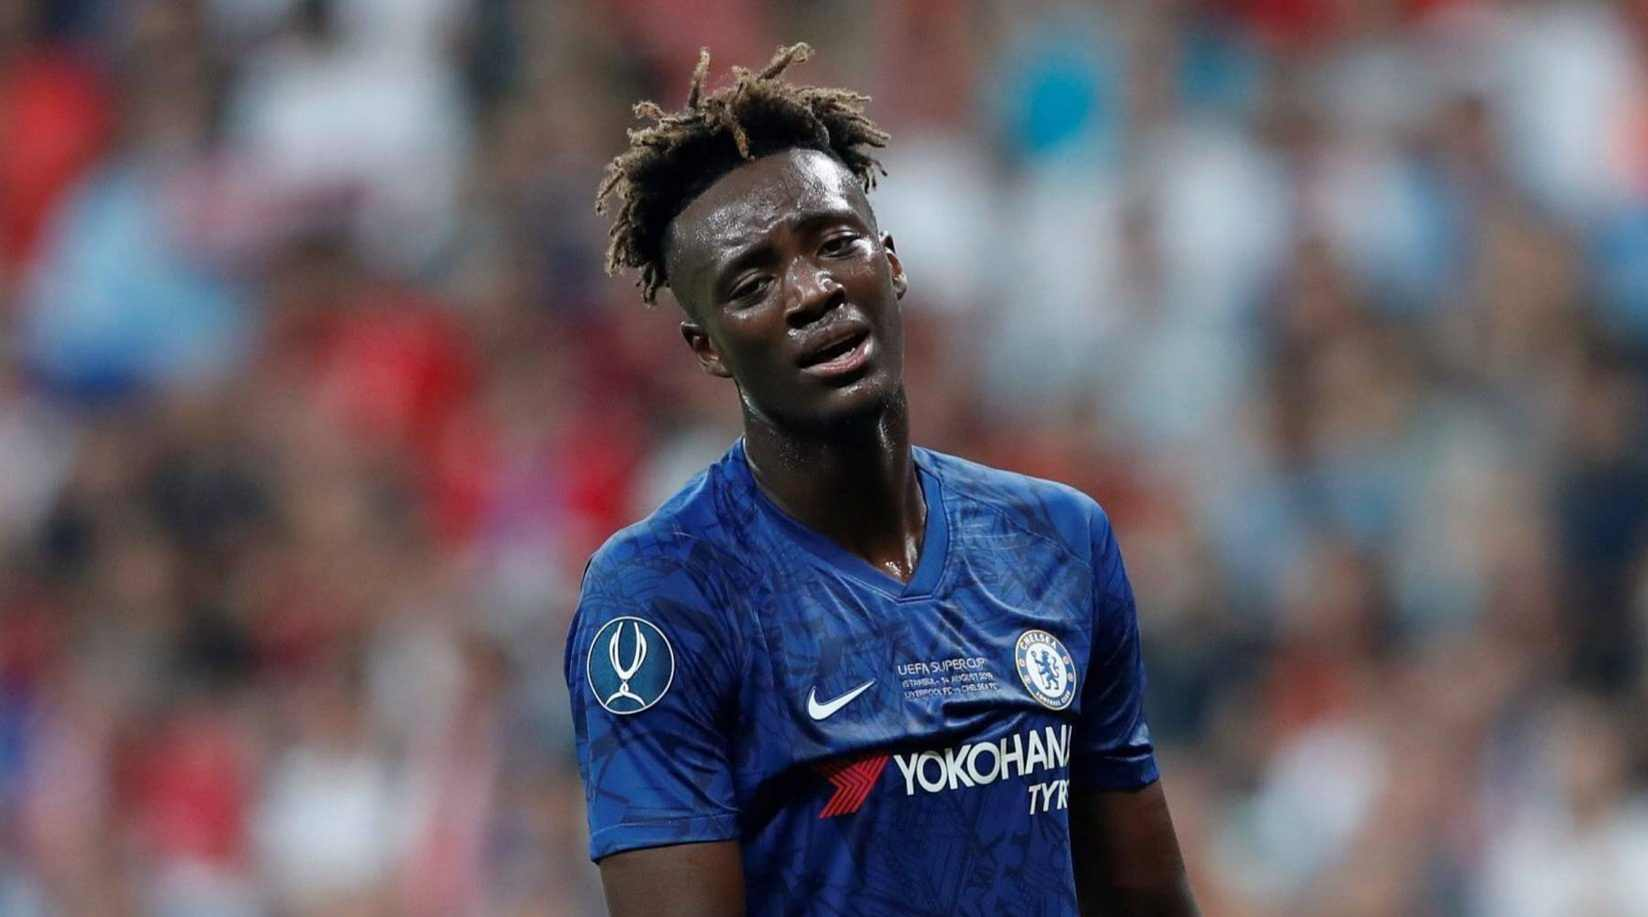 Tammy Abraham questions Lampard's tactics after Sheffield thrashing